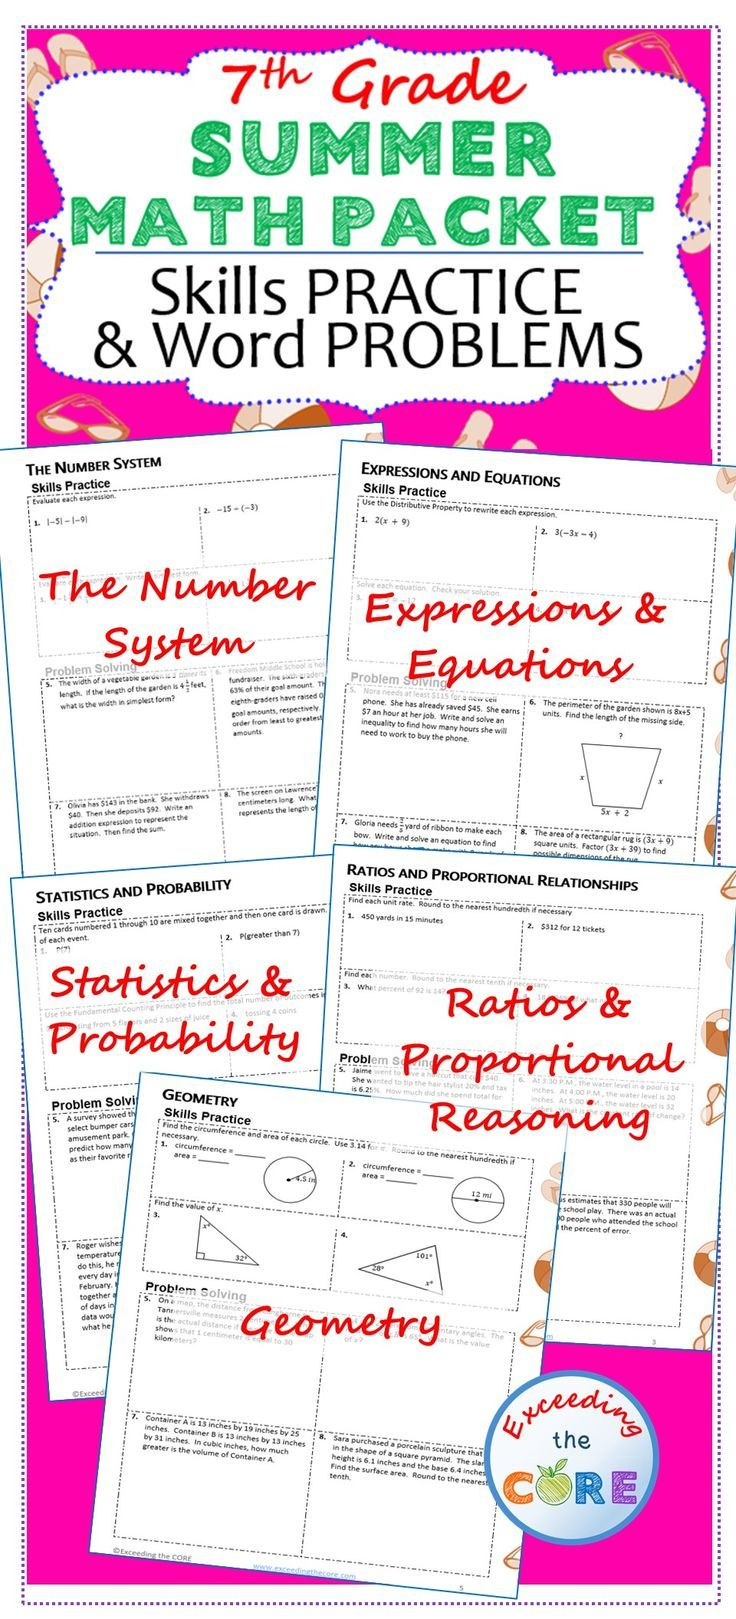 Workbooks math blaster worksheets : Best 25+ 7th grade math worksheets ideas on Pinterest | 7th grade ...